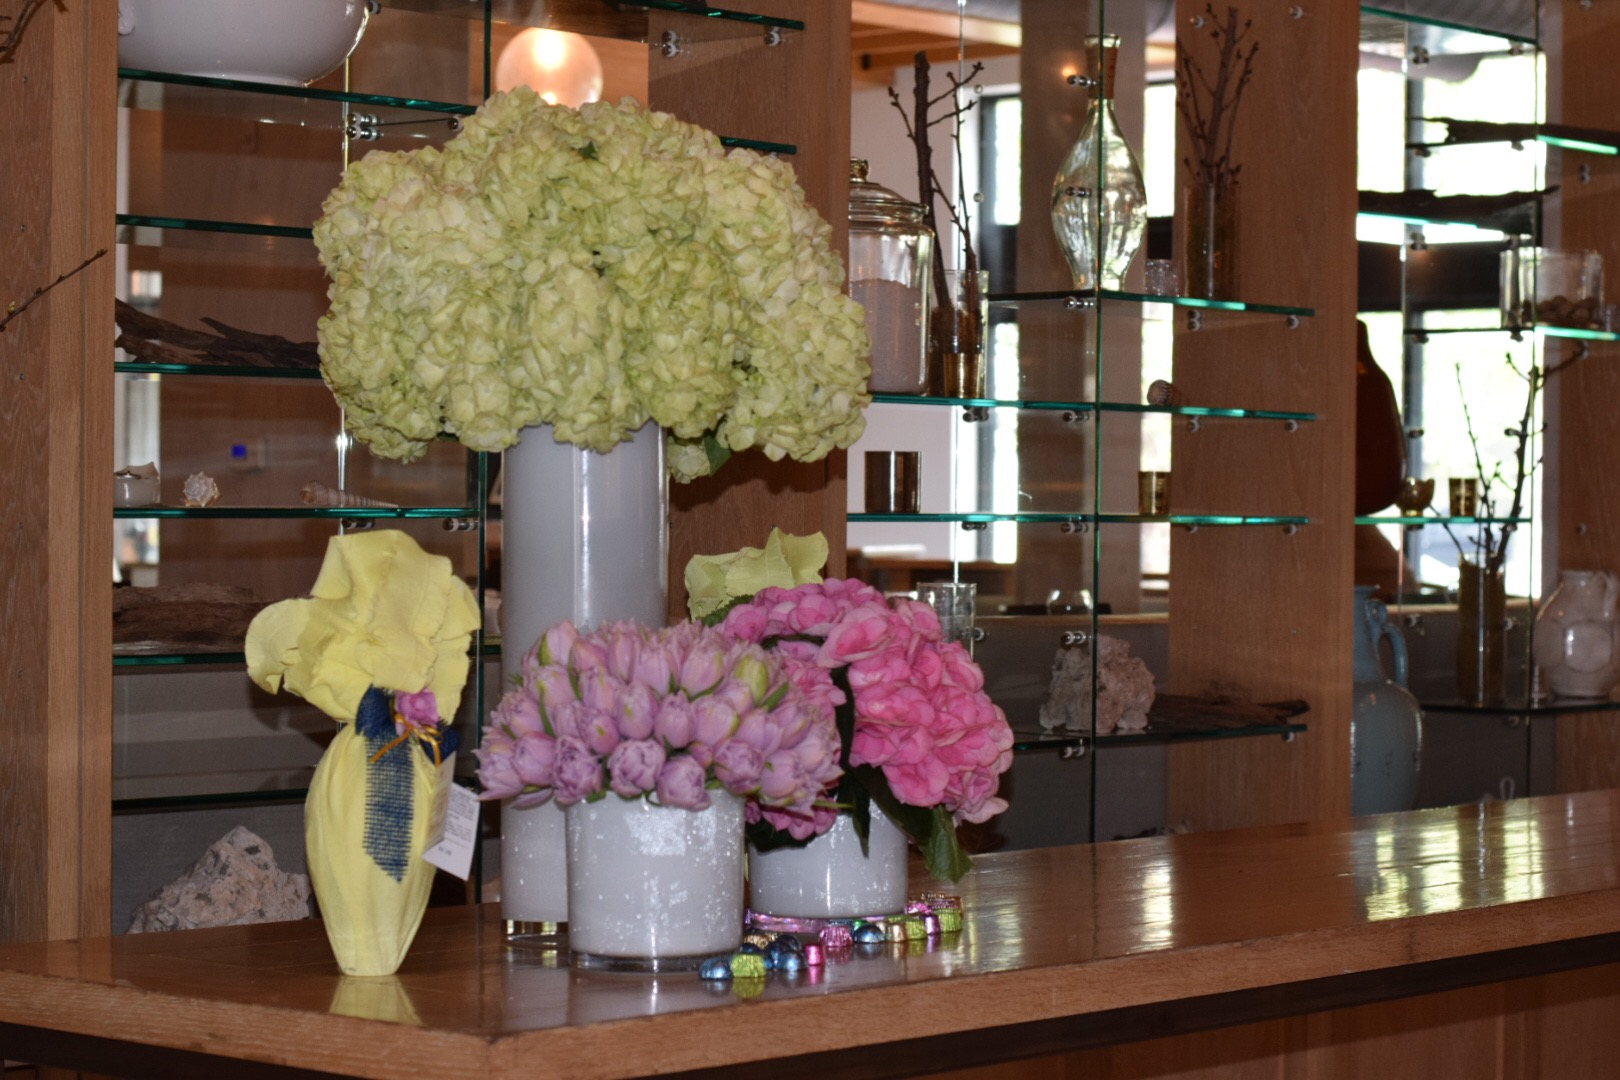 Pistils and petals miami floral design and delivery easter brunch at milos miami social izmirmasajfo